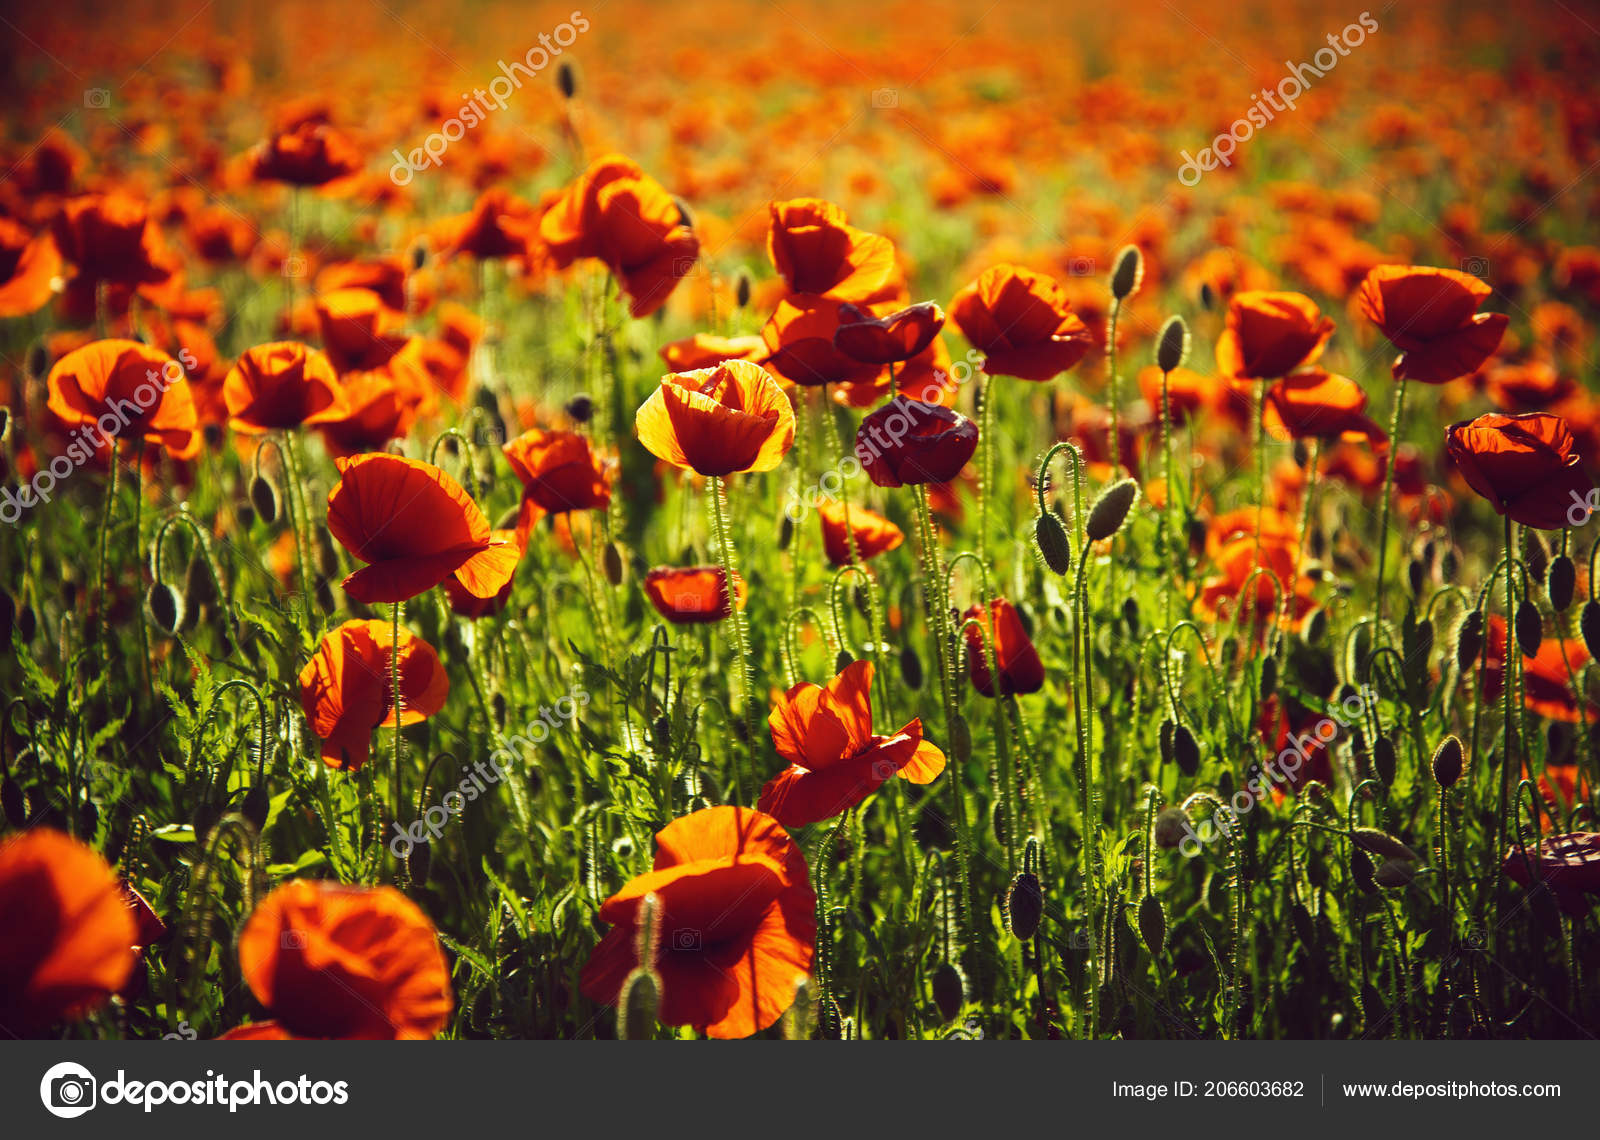 Poppy seed or red flower in field stock photo tverdohlib poppy seed or red flower in field stock photo mightylinksfo